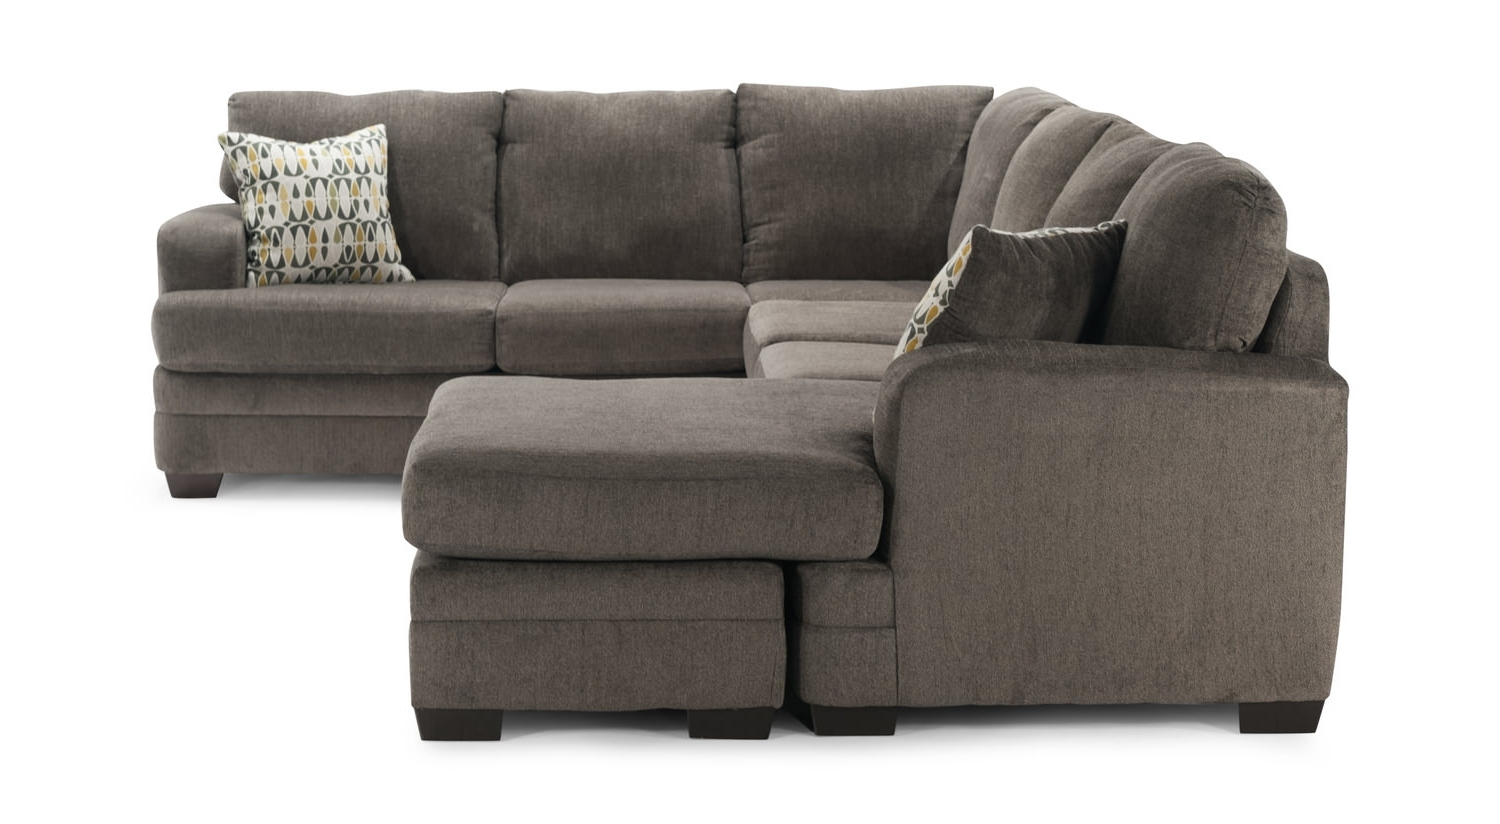 Dock 86 Sectional Sofas Inside Most Recently Released Galena 2 Piece Sectional (View 2 of 15)